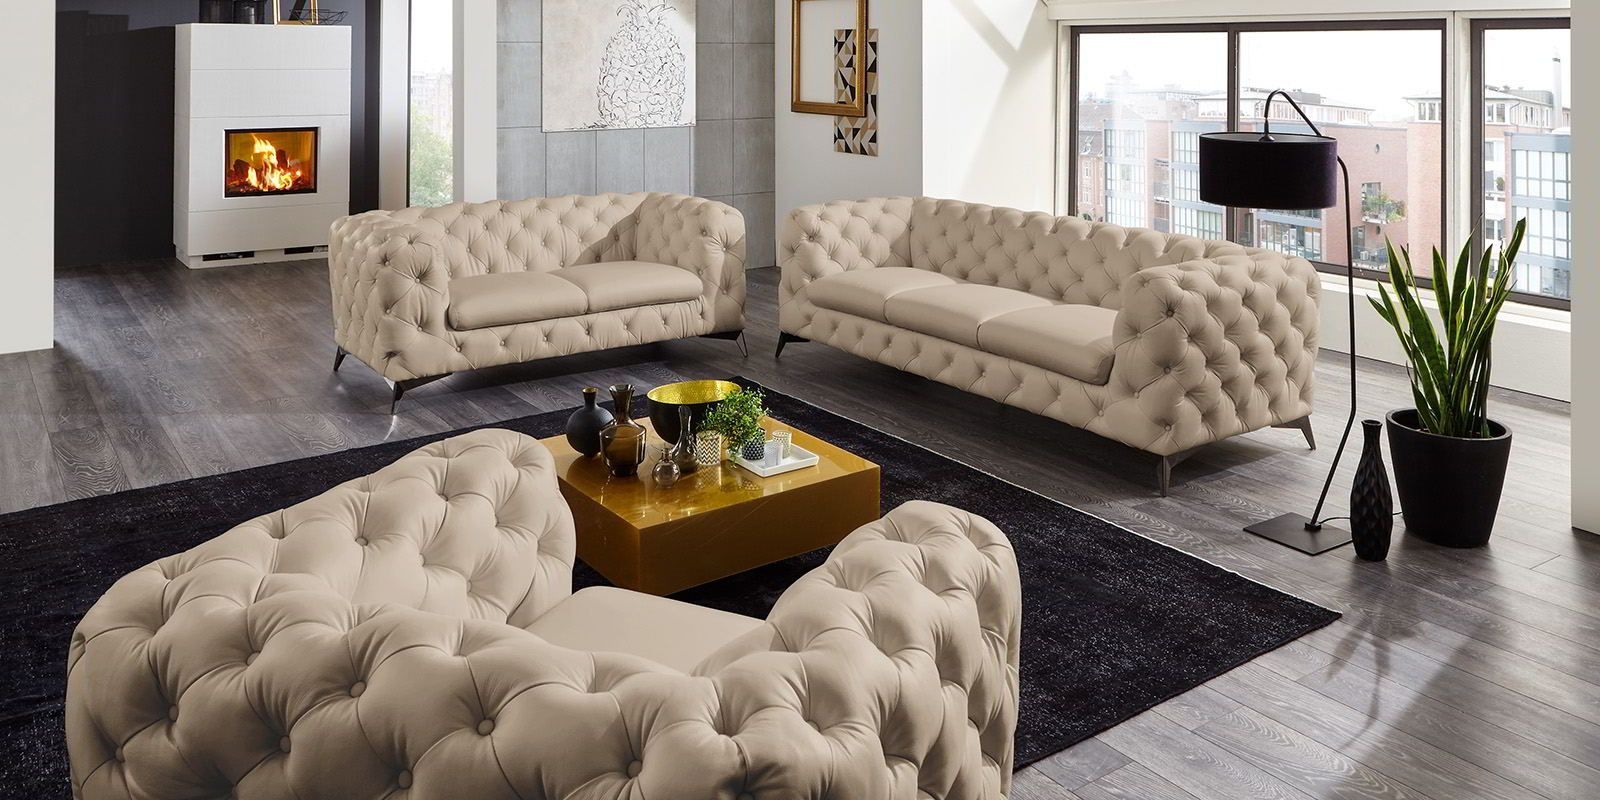 Couchgarnitur 3 2 1 Chesterfield Ledersofa Beige Big Emma 1 Couchgarnitur Chesterfield Möbel Chesterfield Wohnzimmer